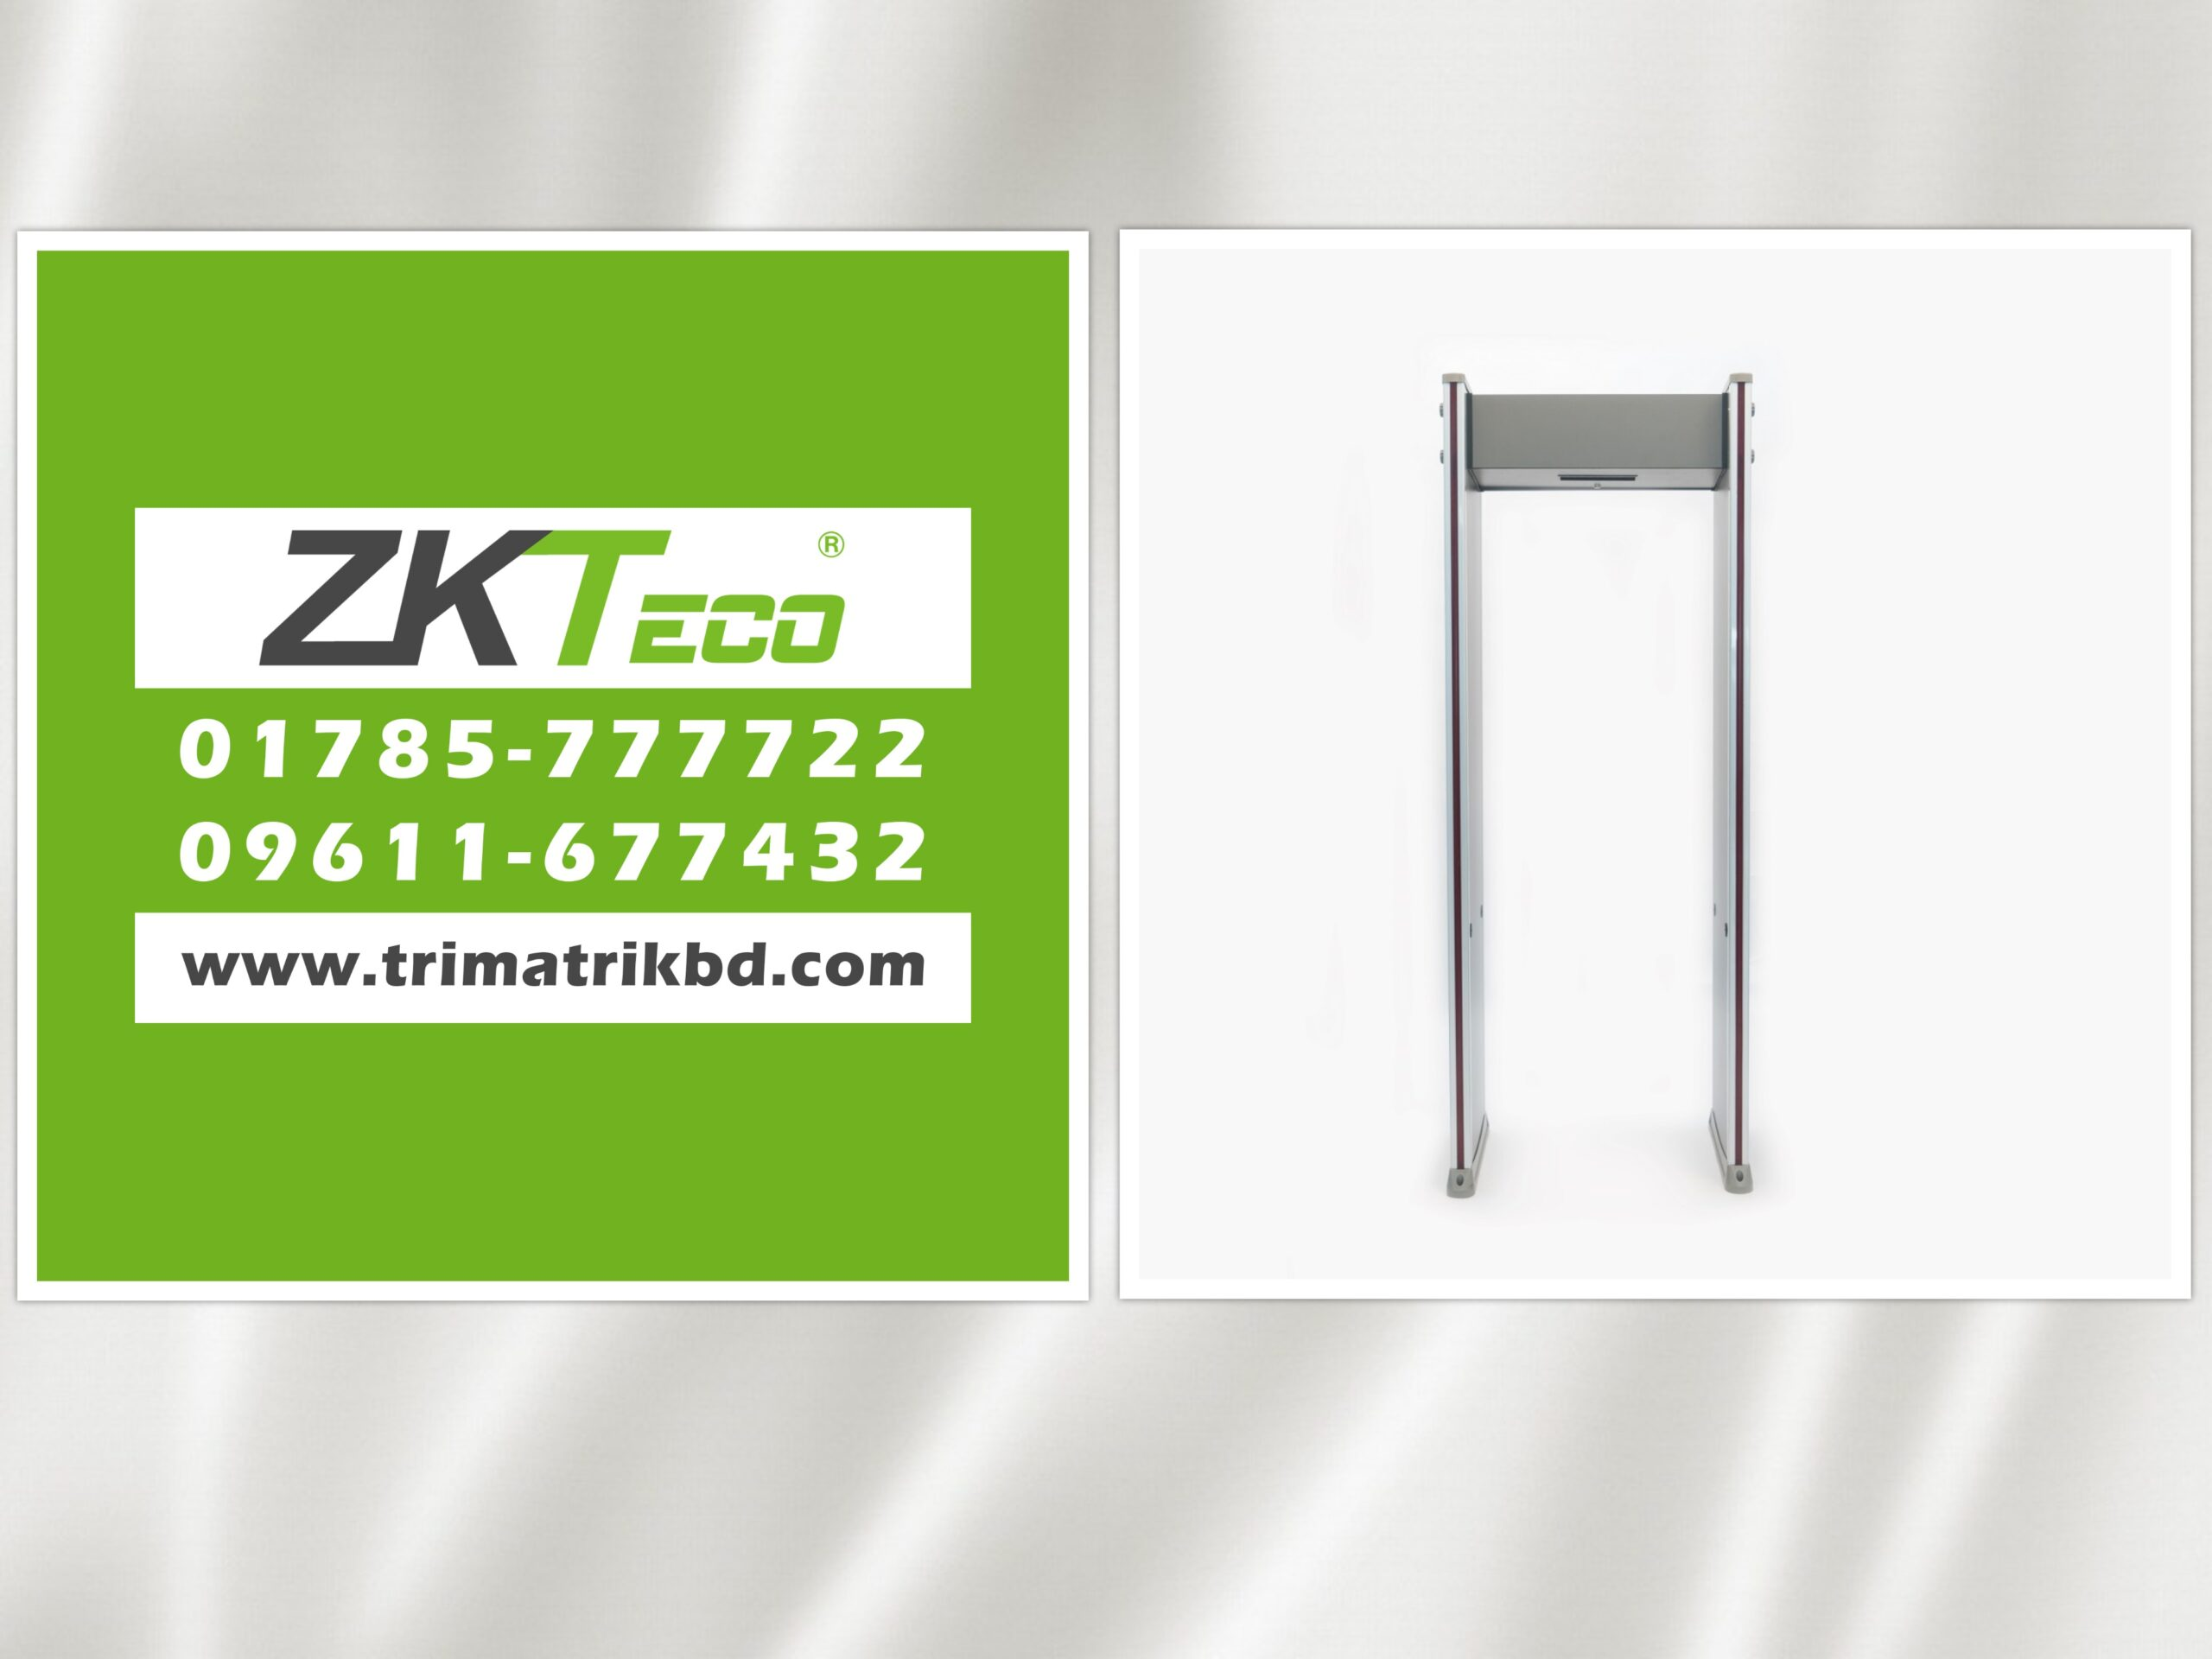 Archway Gate Price in Bangladesh, Archway Gate Price in BD